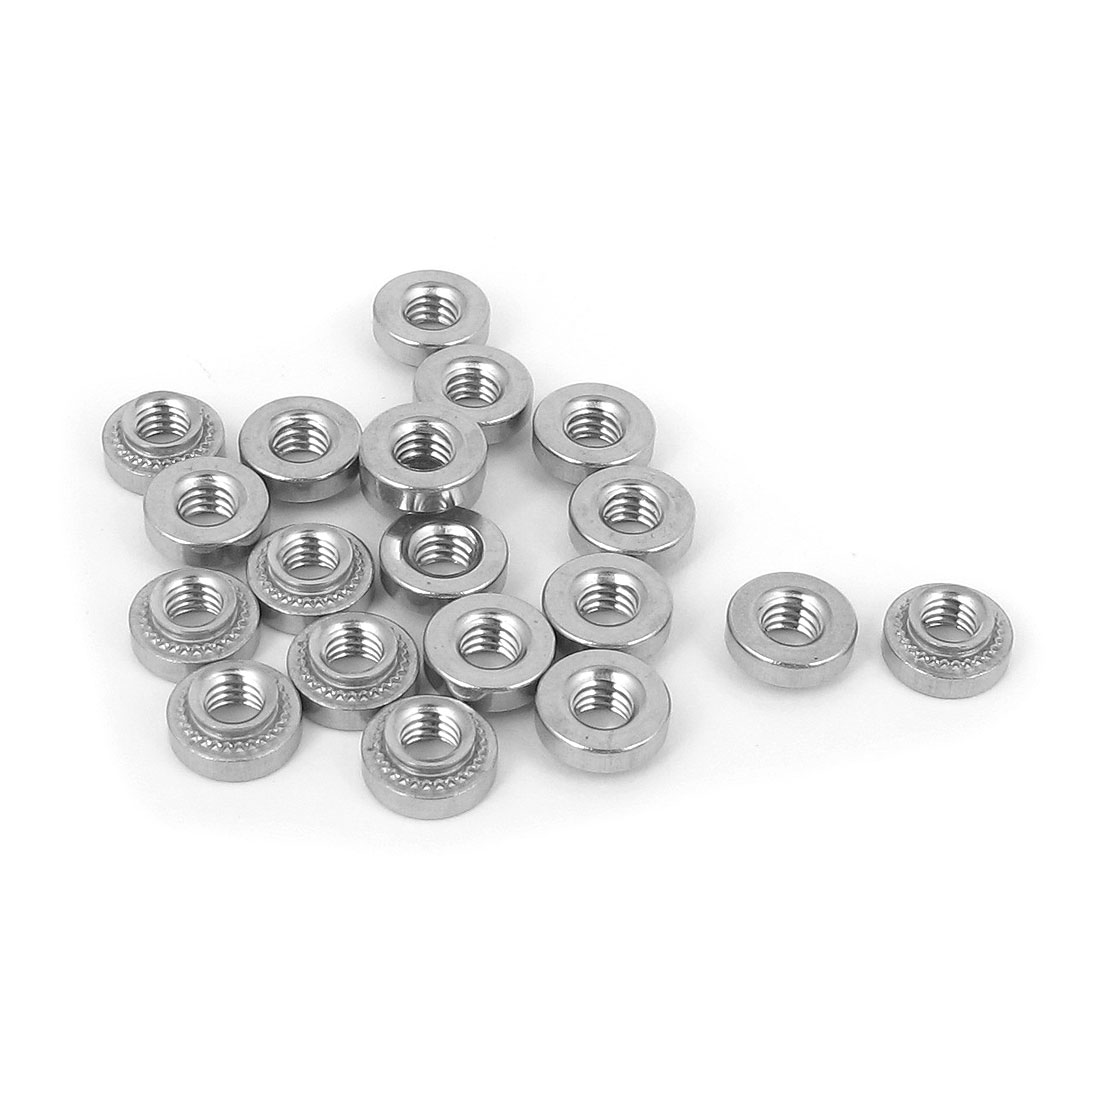 M4 Stainless Steel Self Clinching Rivet Nut Fastener 20pcs for 1.4mm Thin Plates